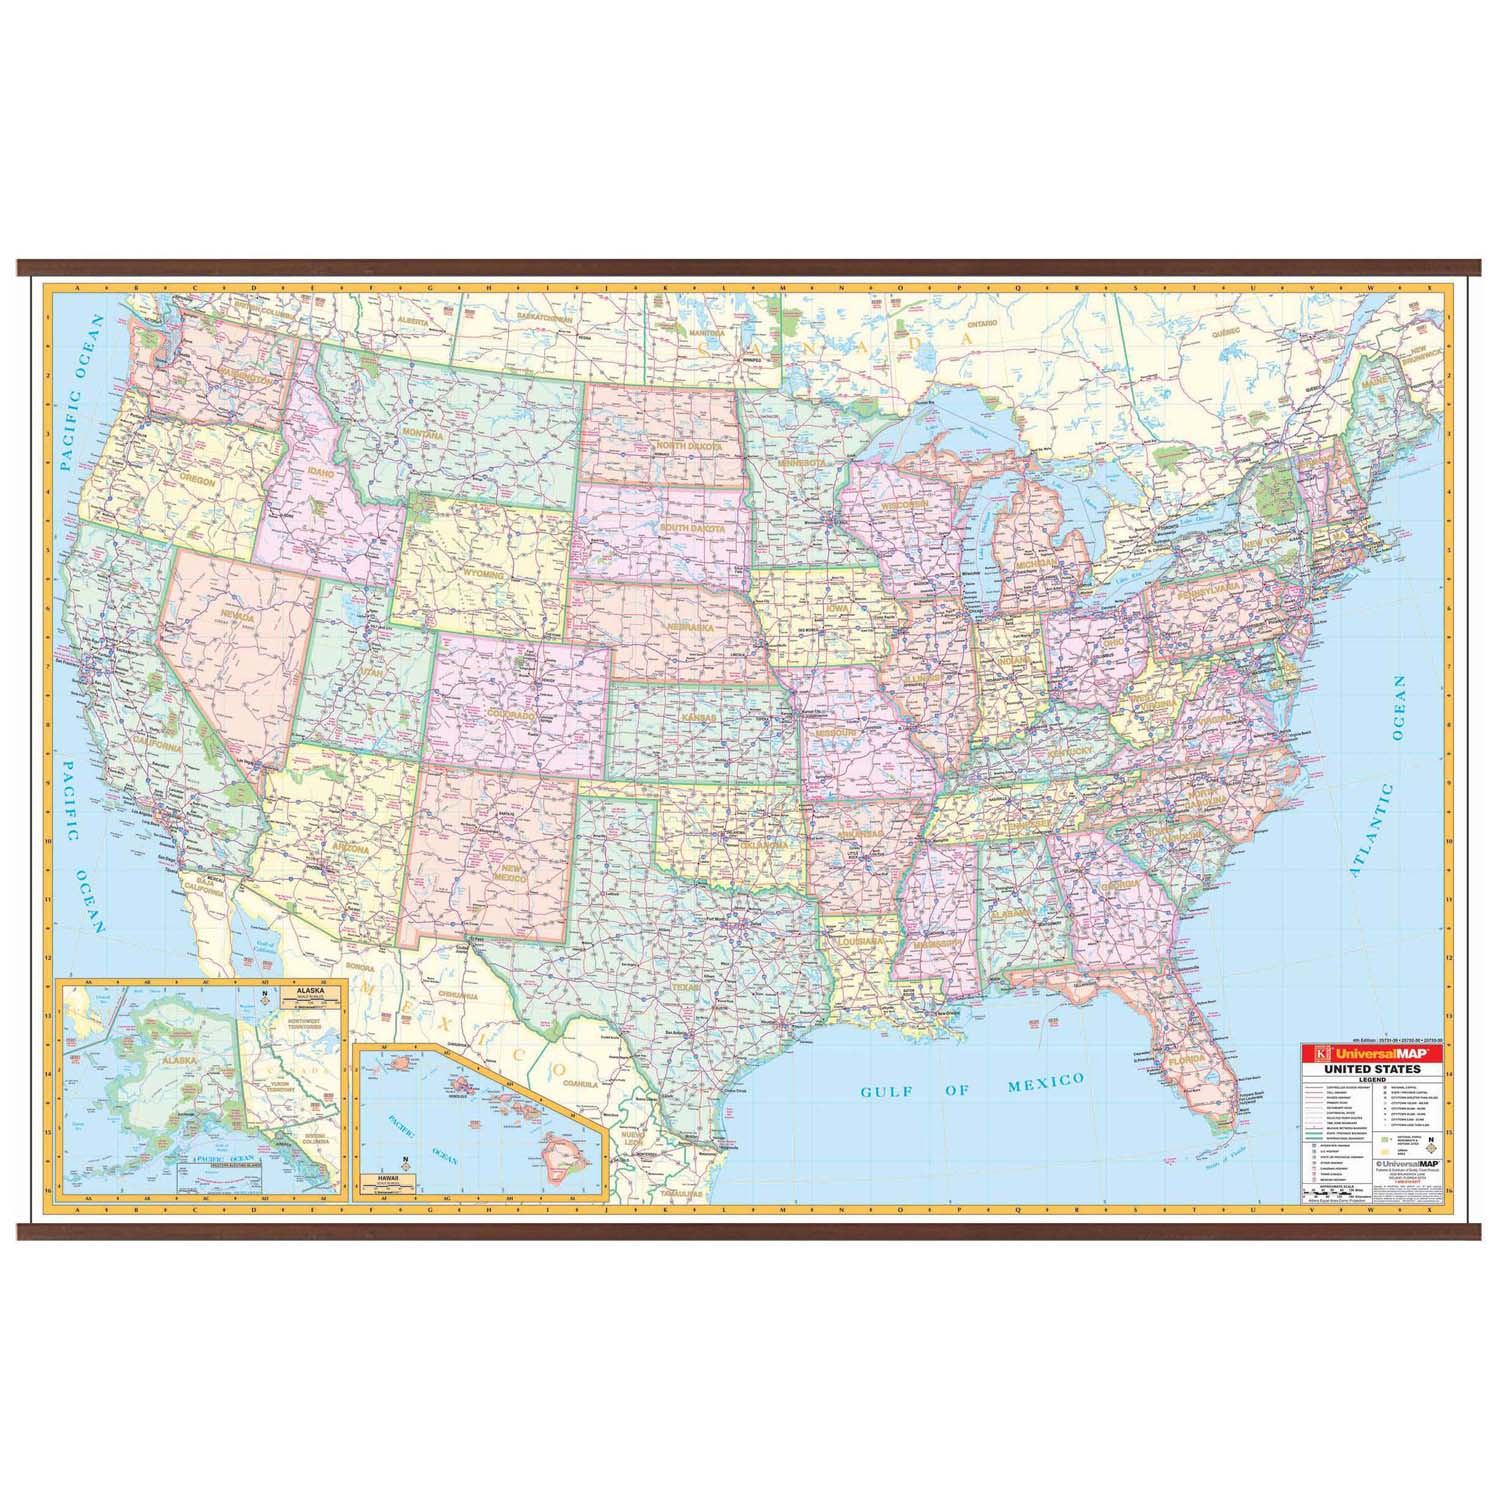 The national highway system includes the interstate highway system, which had a length of 46,876 miles as of 2006. Us Interstate Wall Map Shop United States Wall Maps